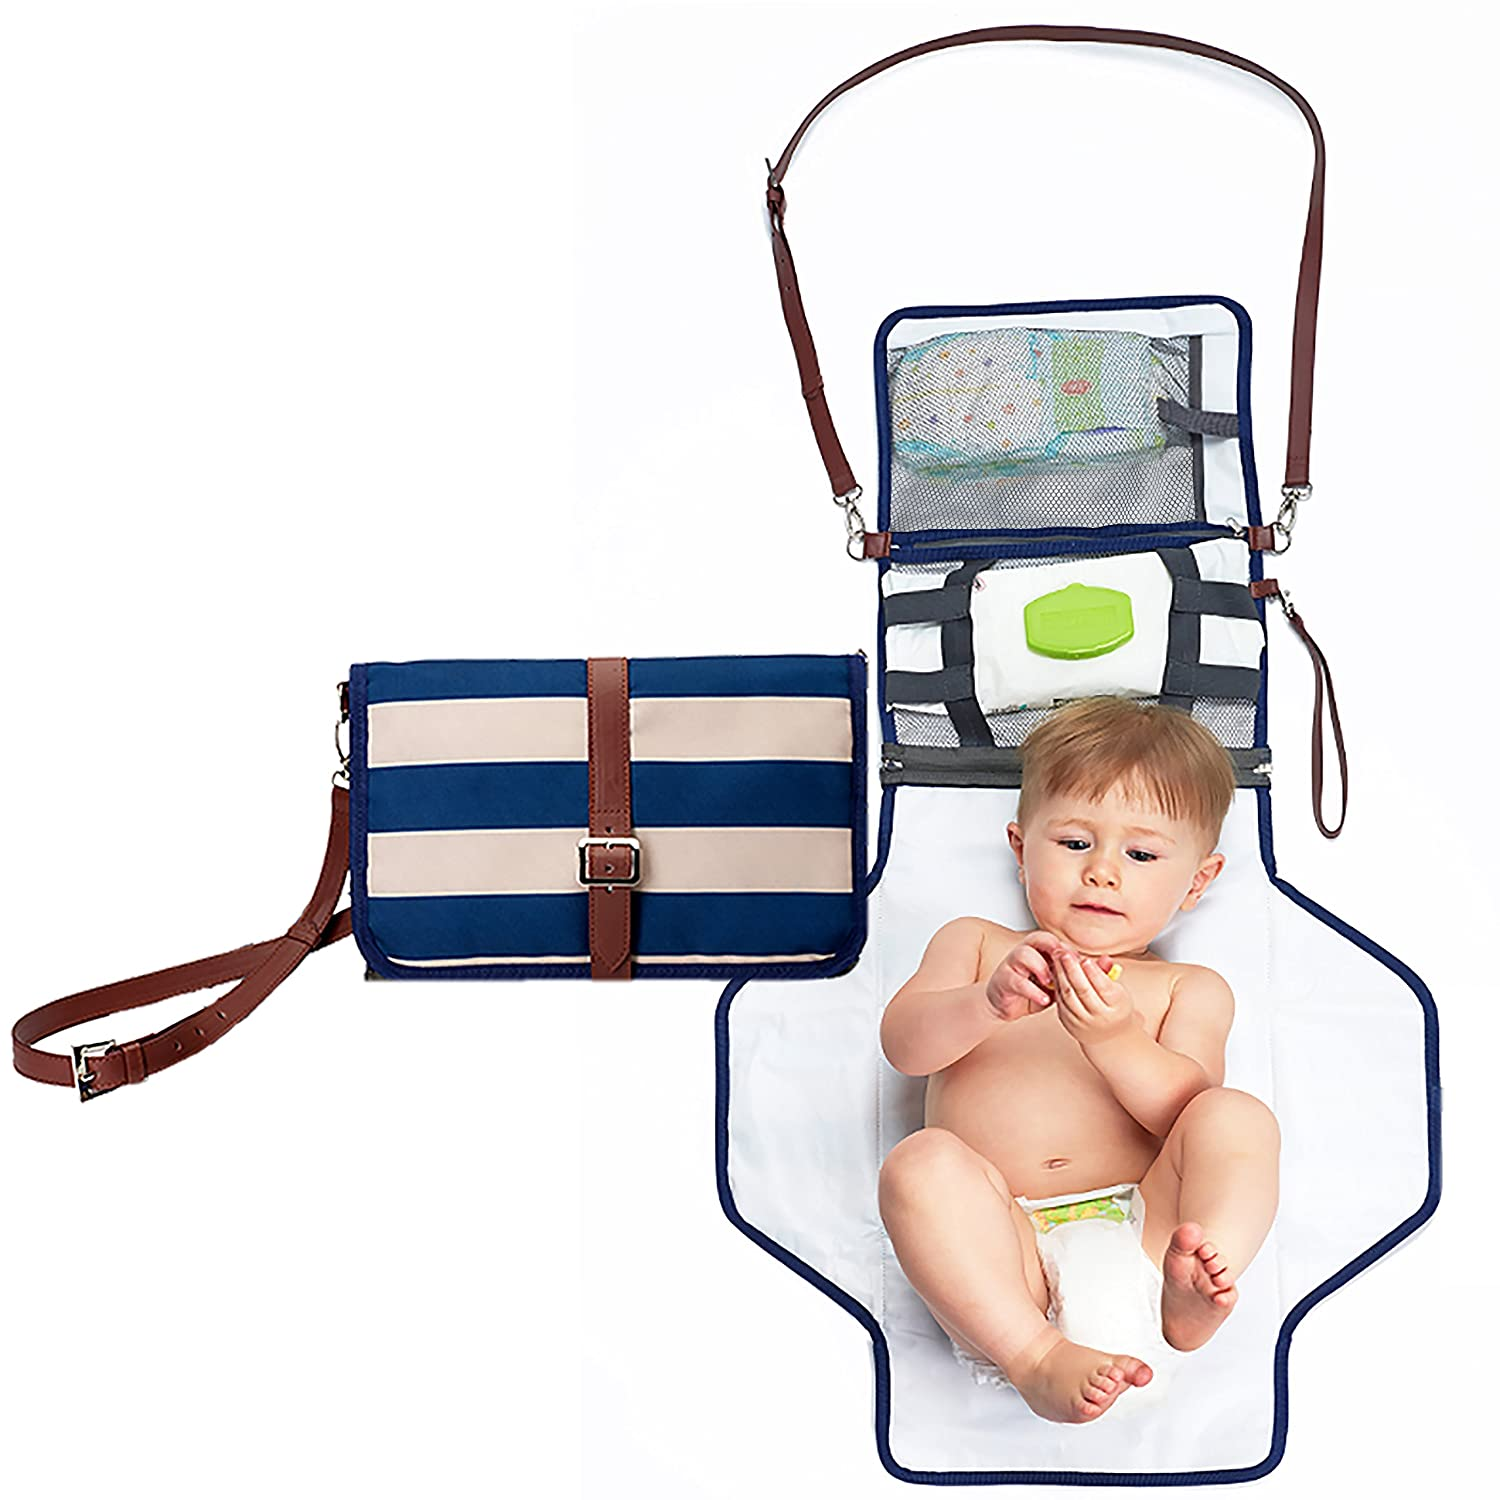 Portable Changing Pad Diaper Clutch - Small Diaper Bag Purse w/Shoulder Strap | Changing Station w/Extra Storage for Diapers, Wipes Holder, Essentials, and a Baby Outfit | Waterproof, BPA Free VanWagner